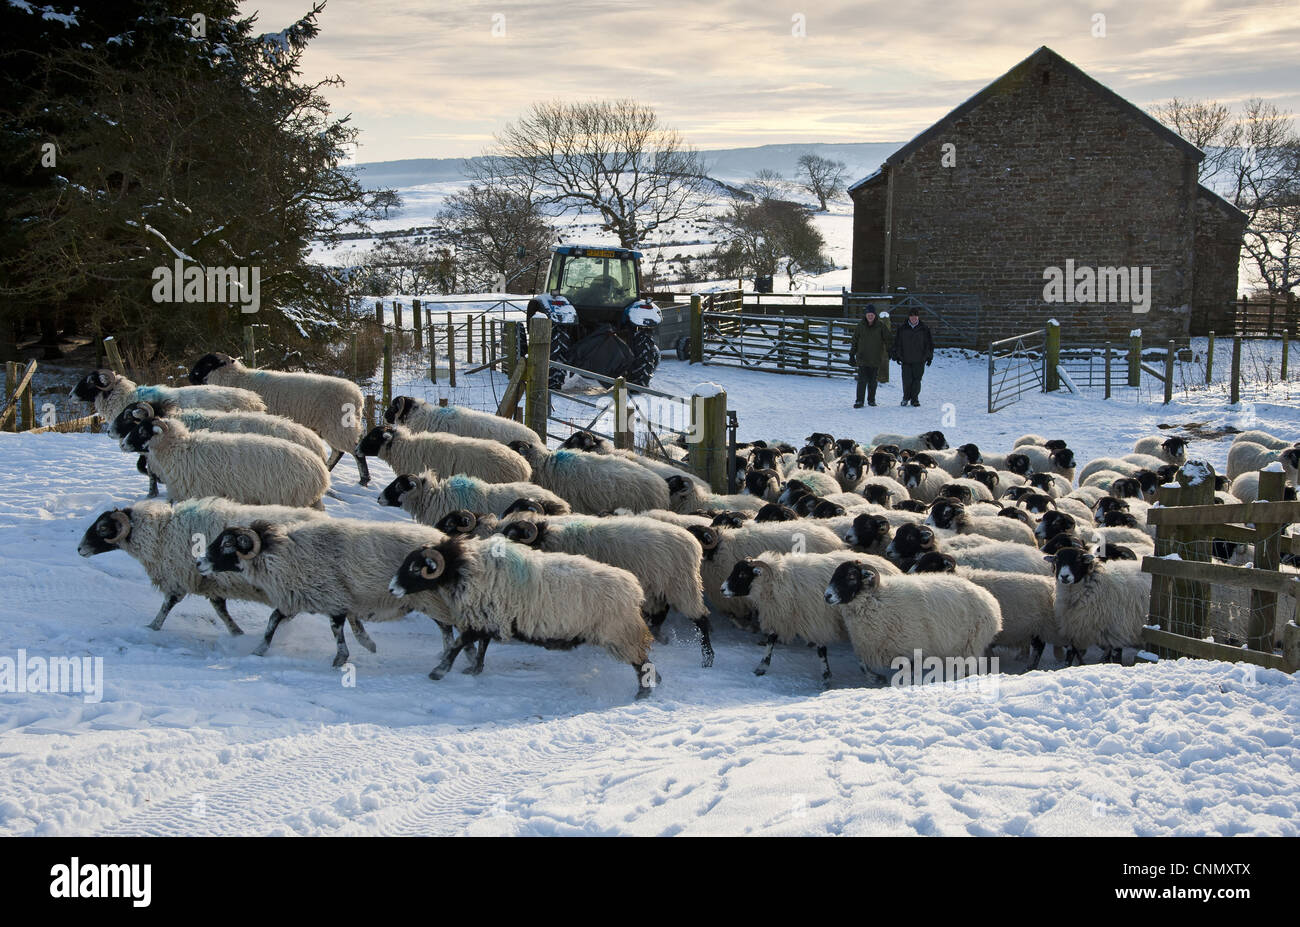 Domestic Sheep Swaledale ewes flock moved snow covered pasture tractor farmers stone barn Whitewell Lancashire England - Stock Image